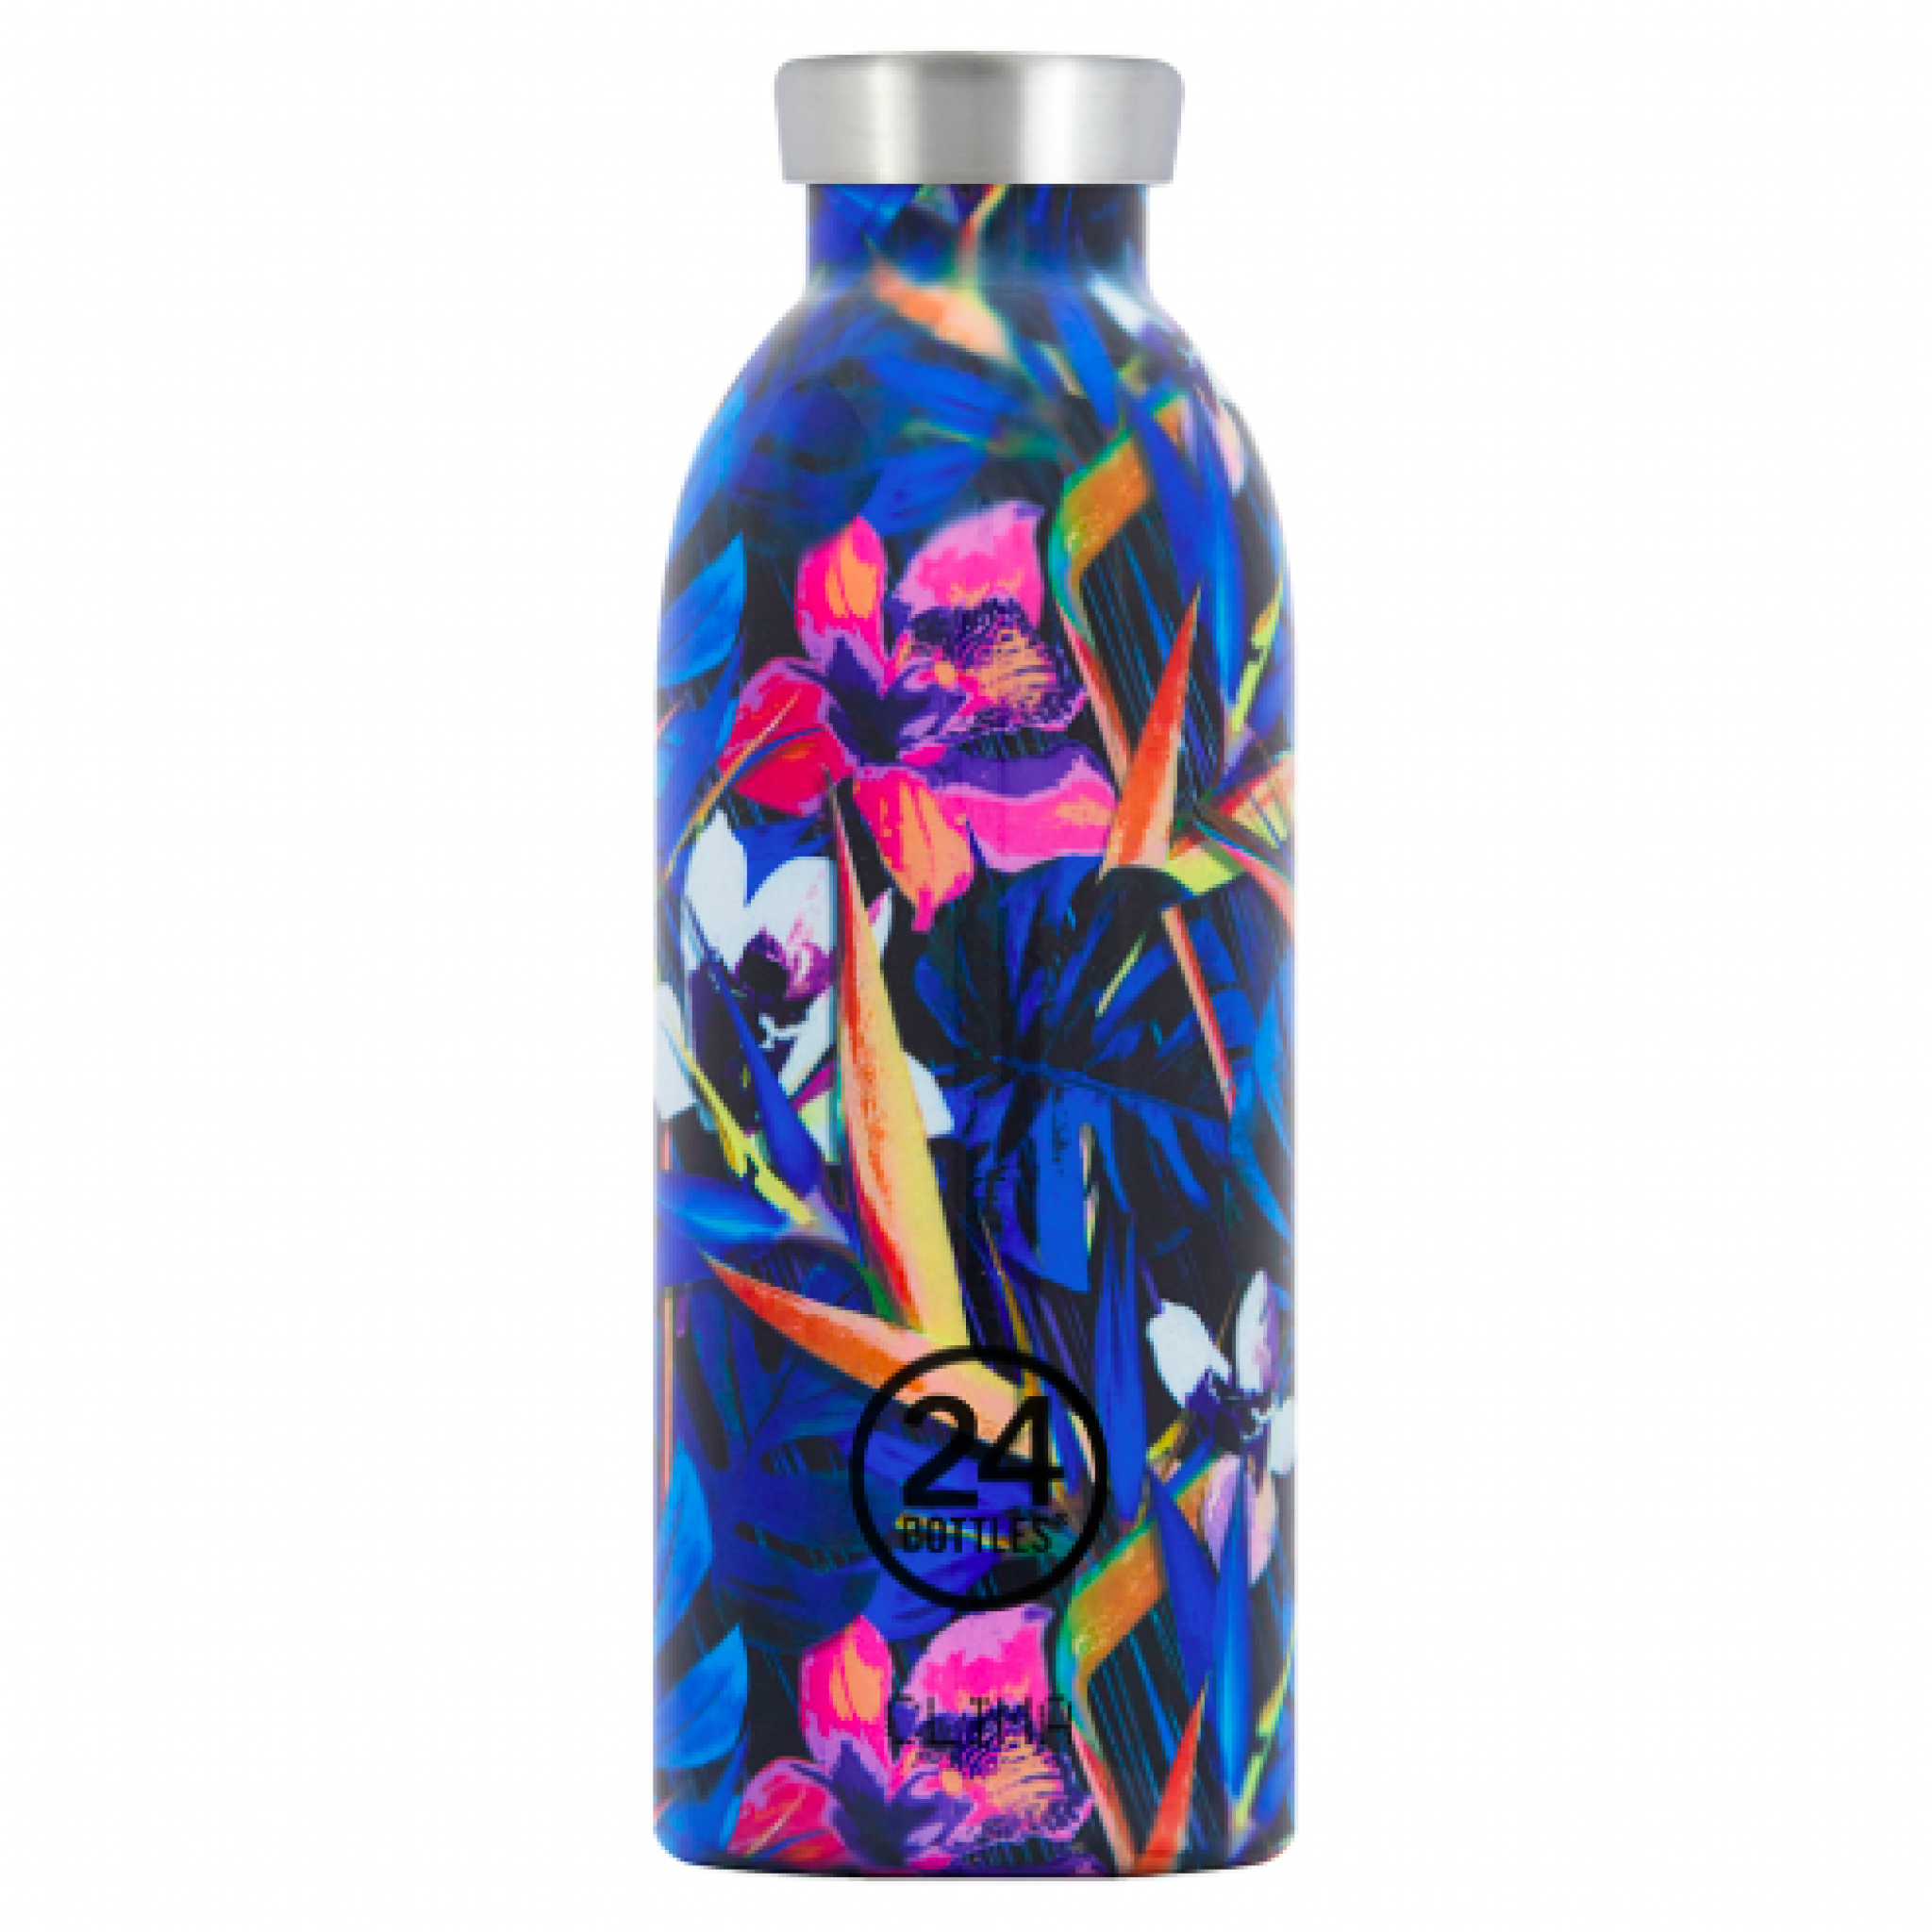 Clima 24Bottles 500 ml Floral Nightfly